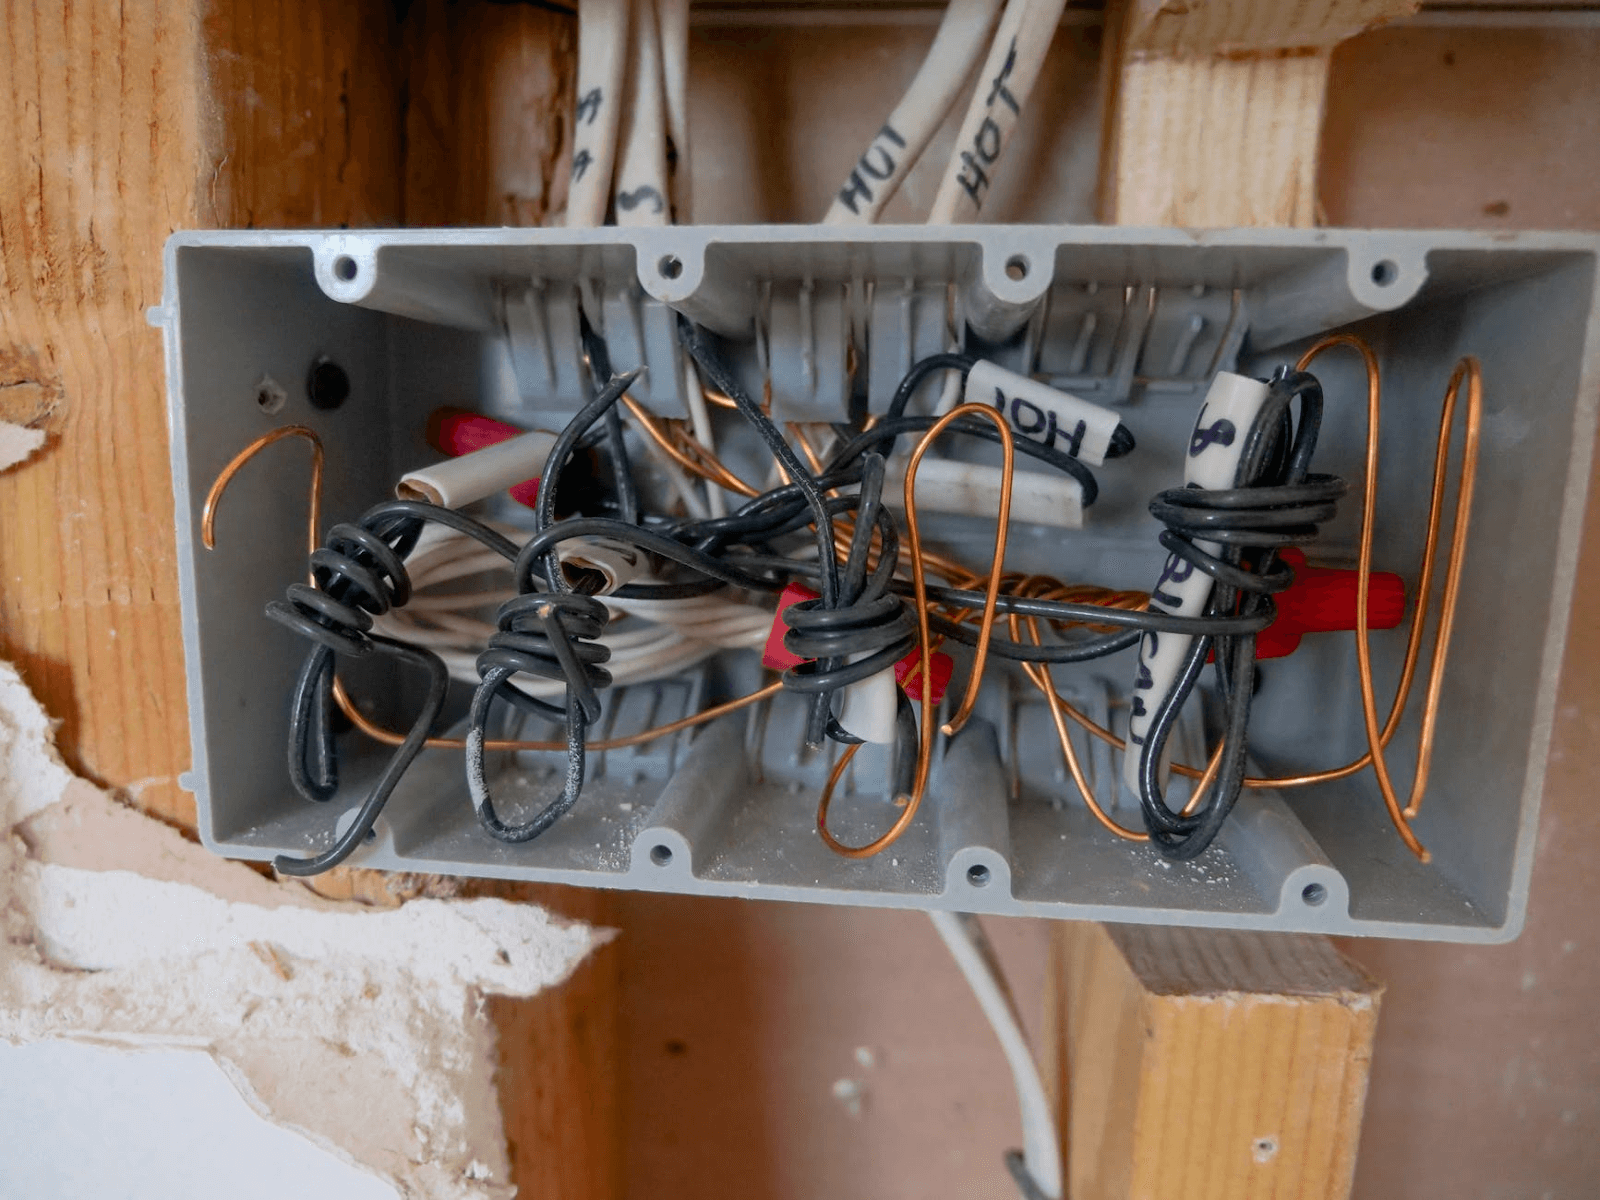 electrical panel wirings